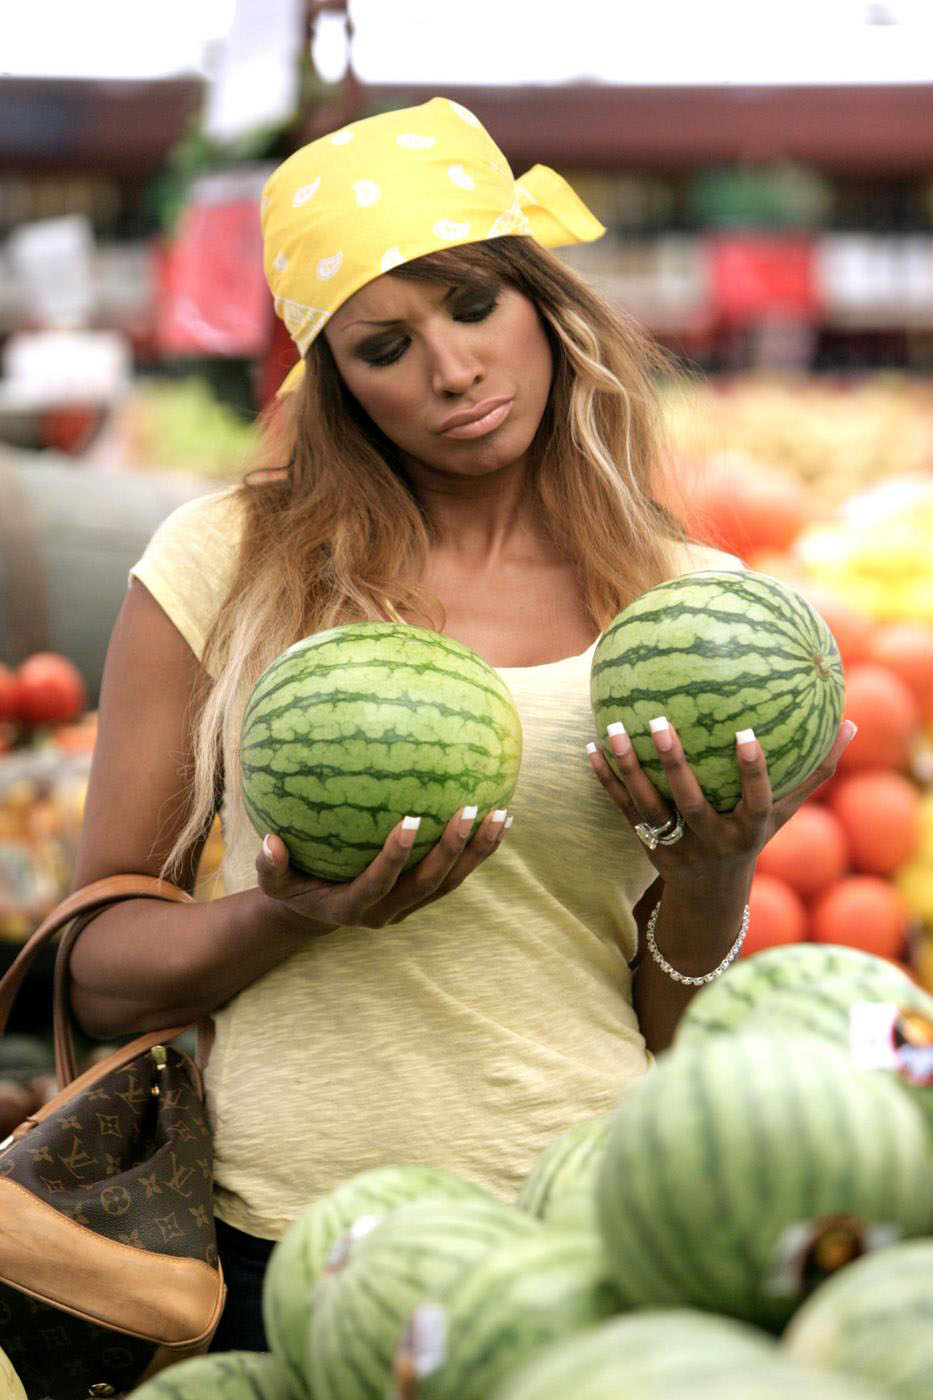 Watermelons like a milkmaid: Anna Semenovich is asked to reduce her breasts 07/17/2018 8